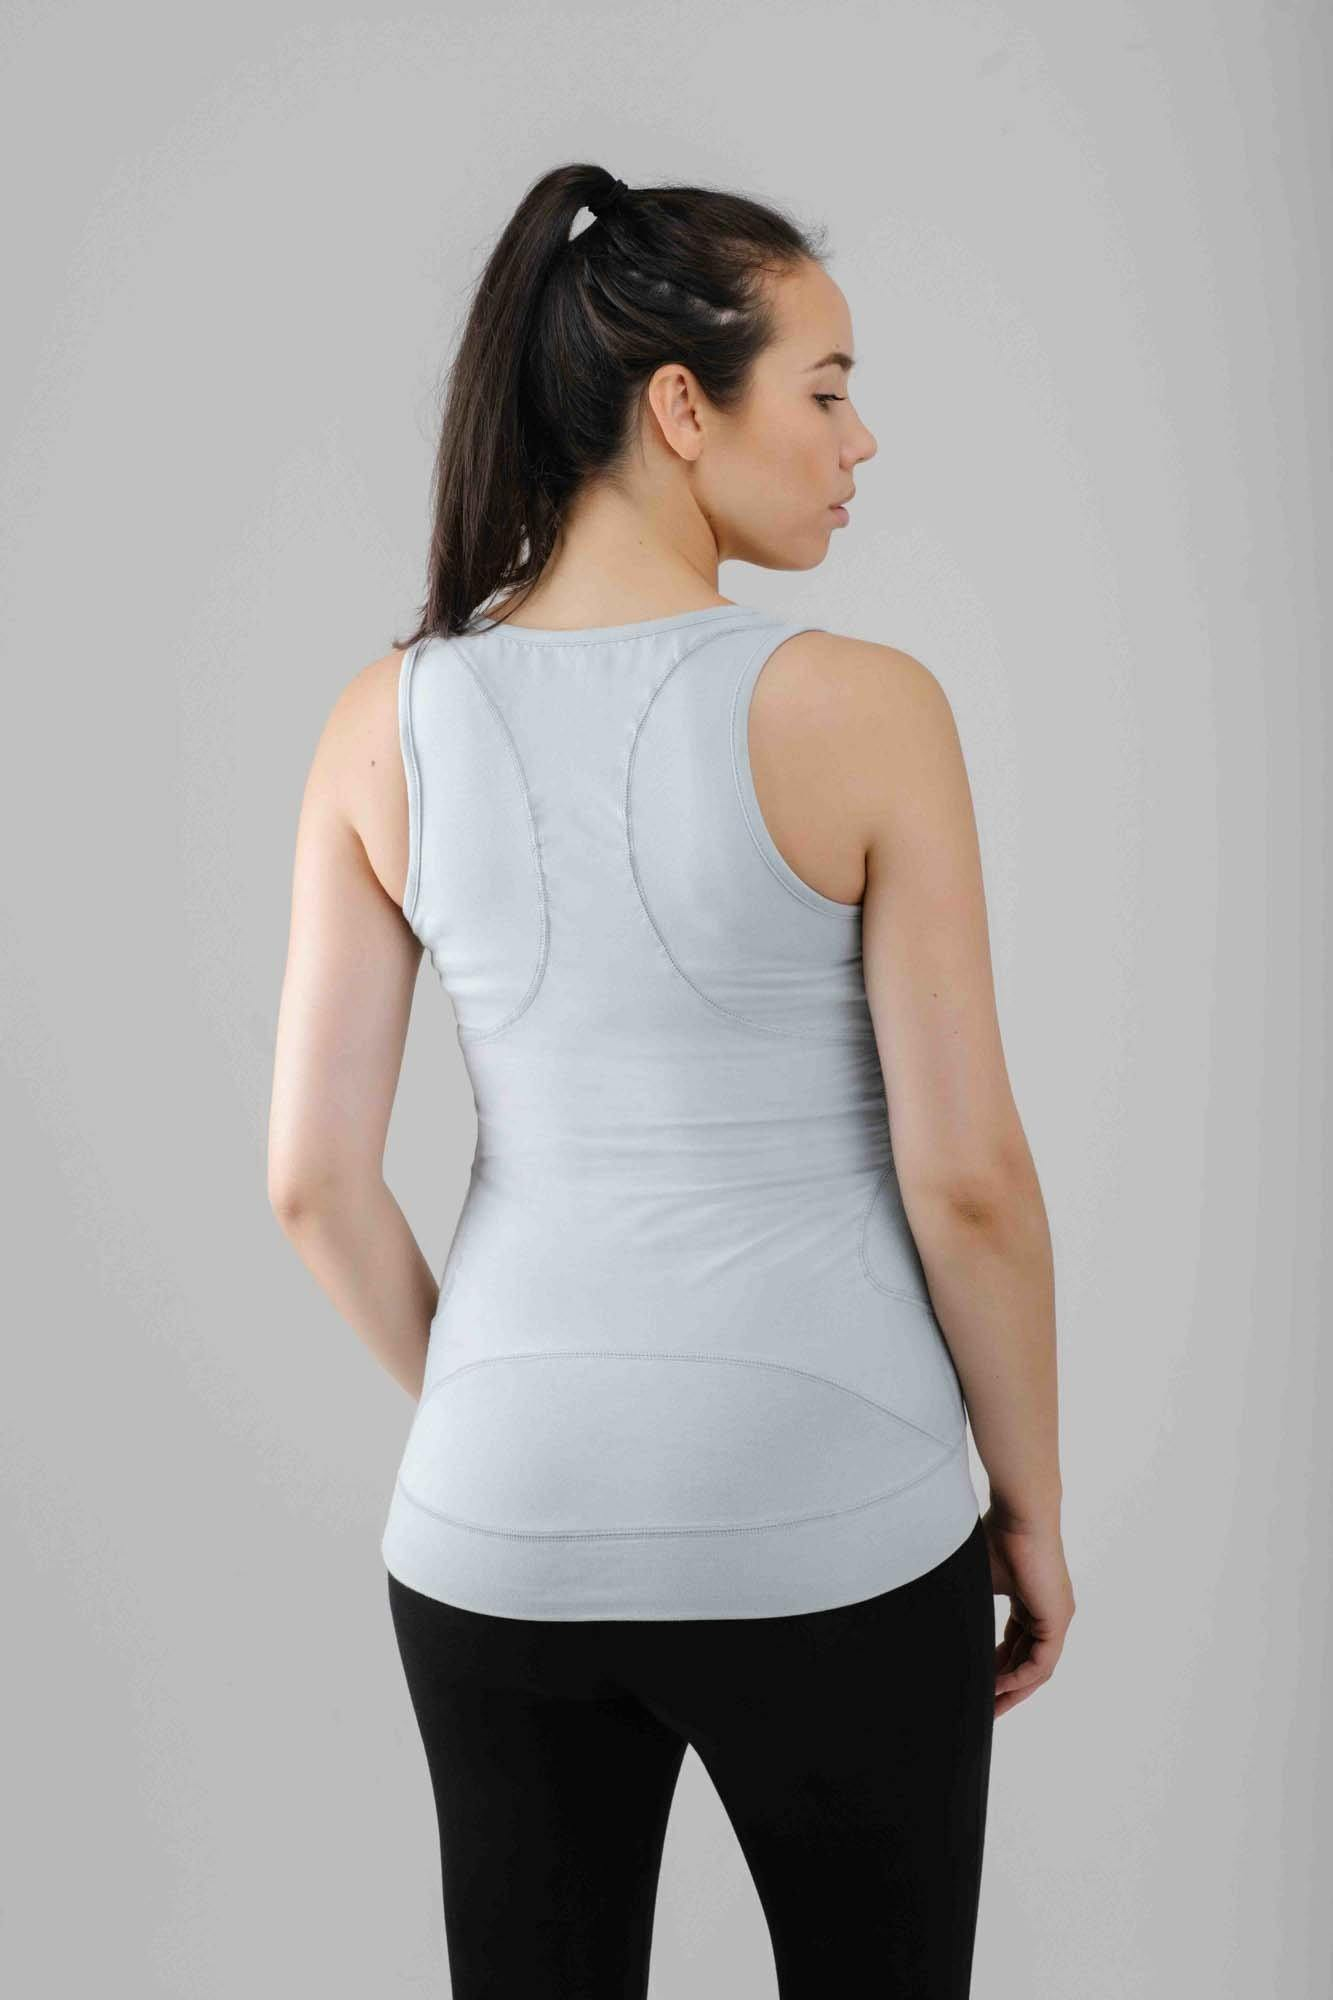 High Support Maternity Exercise Top - FittaMamma